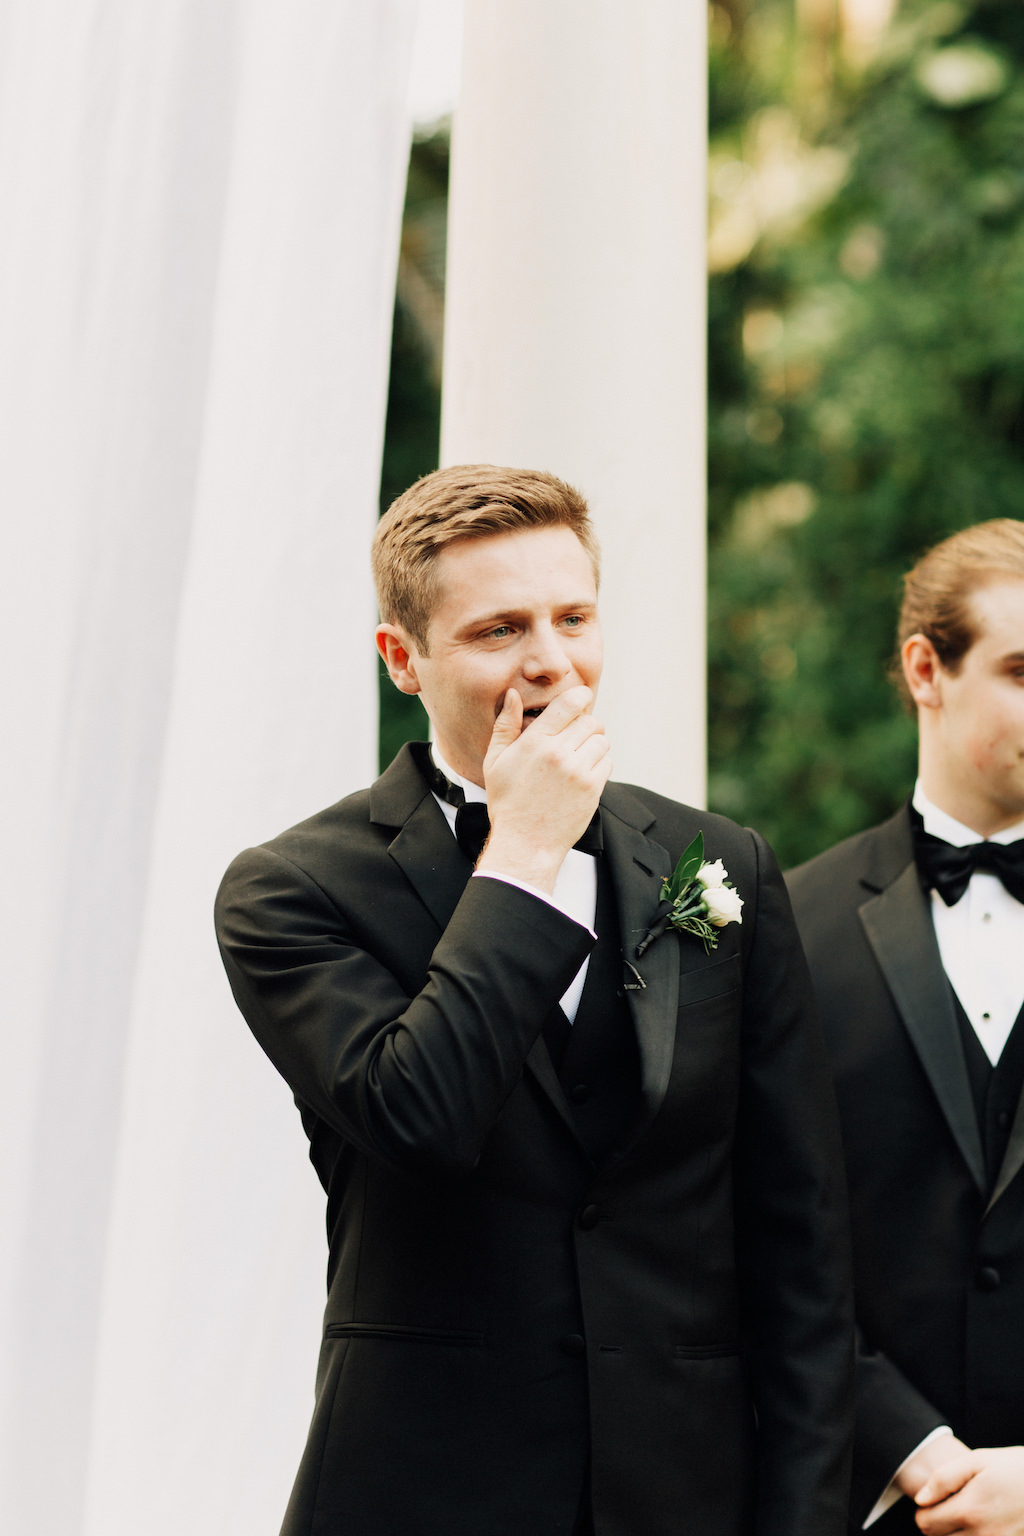 Groom's Reaction to Watching Bride Walk Down the Ceremony Aisle in Black Tuxedo